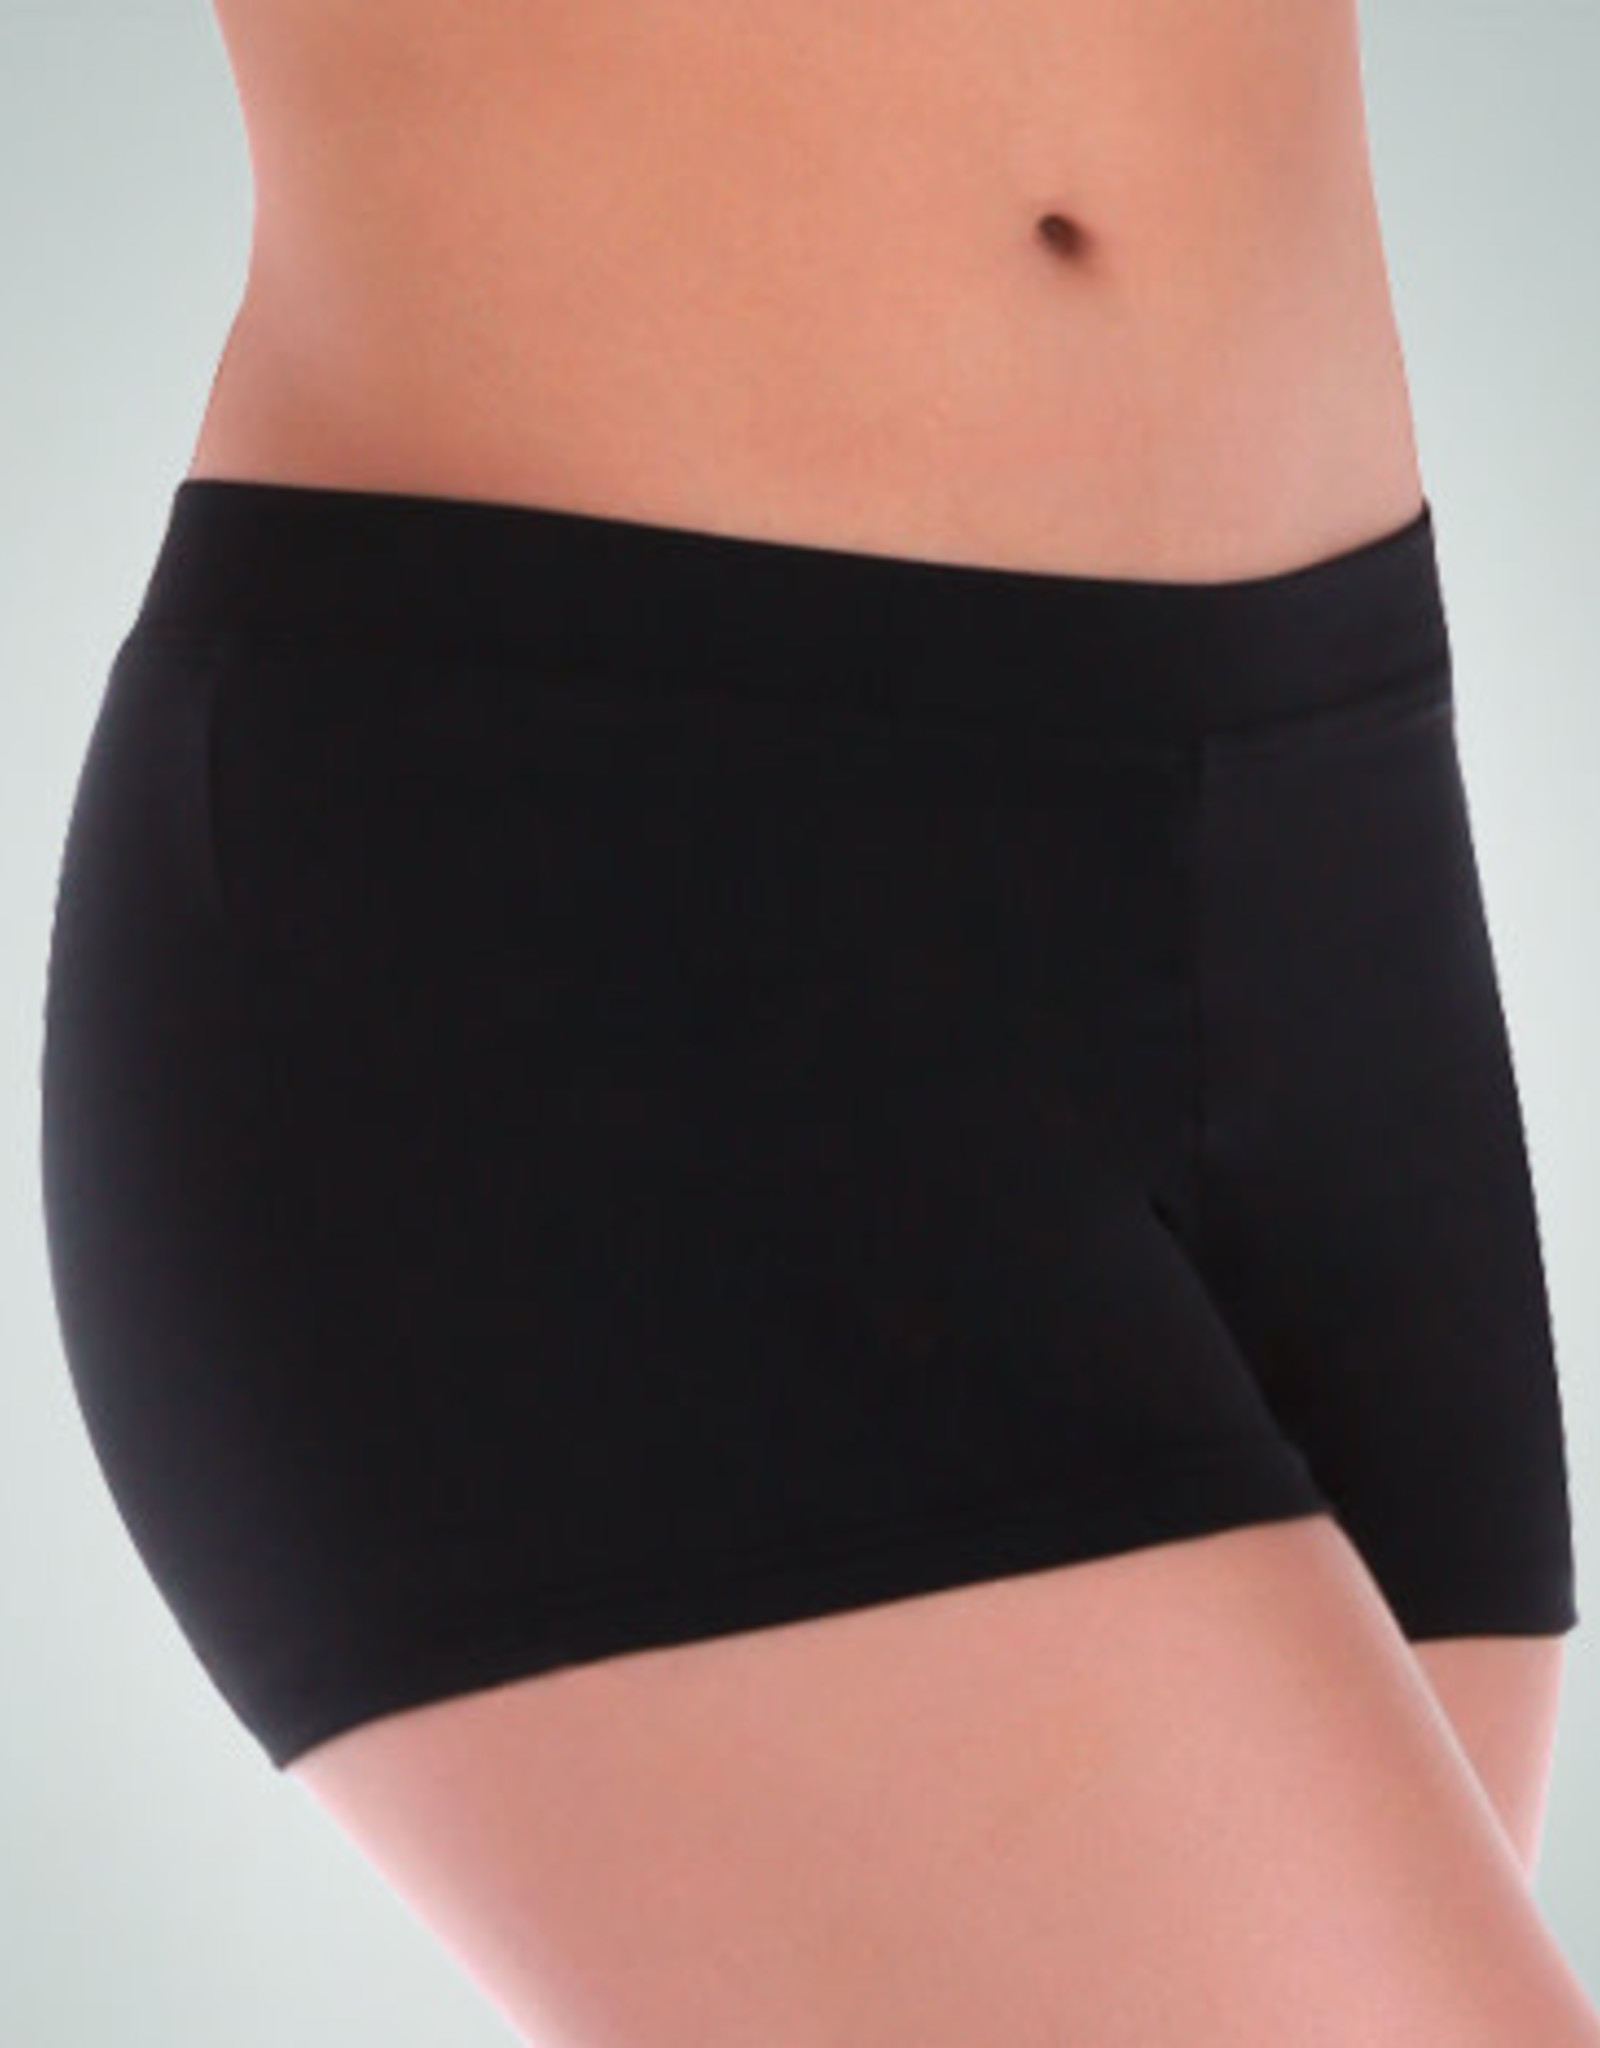 Body Wrappers / Angelo Luzio CUISSARD COURT NYLON BANDE AD